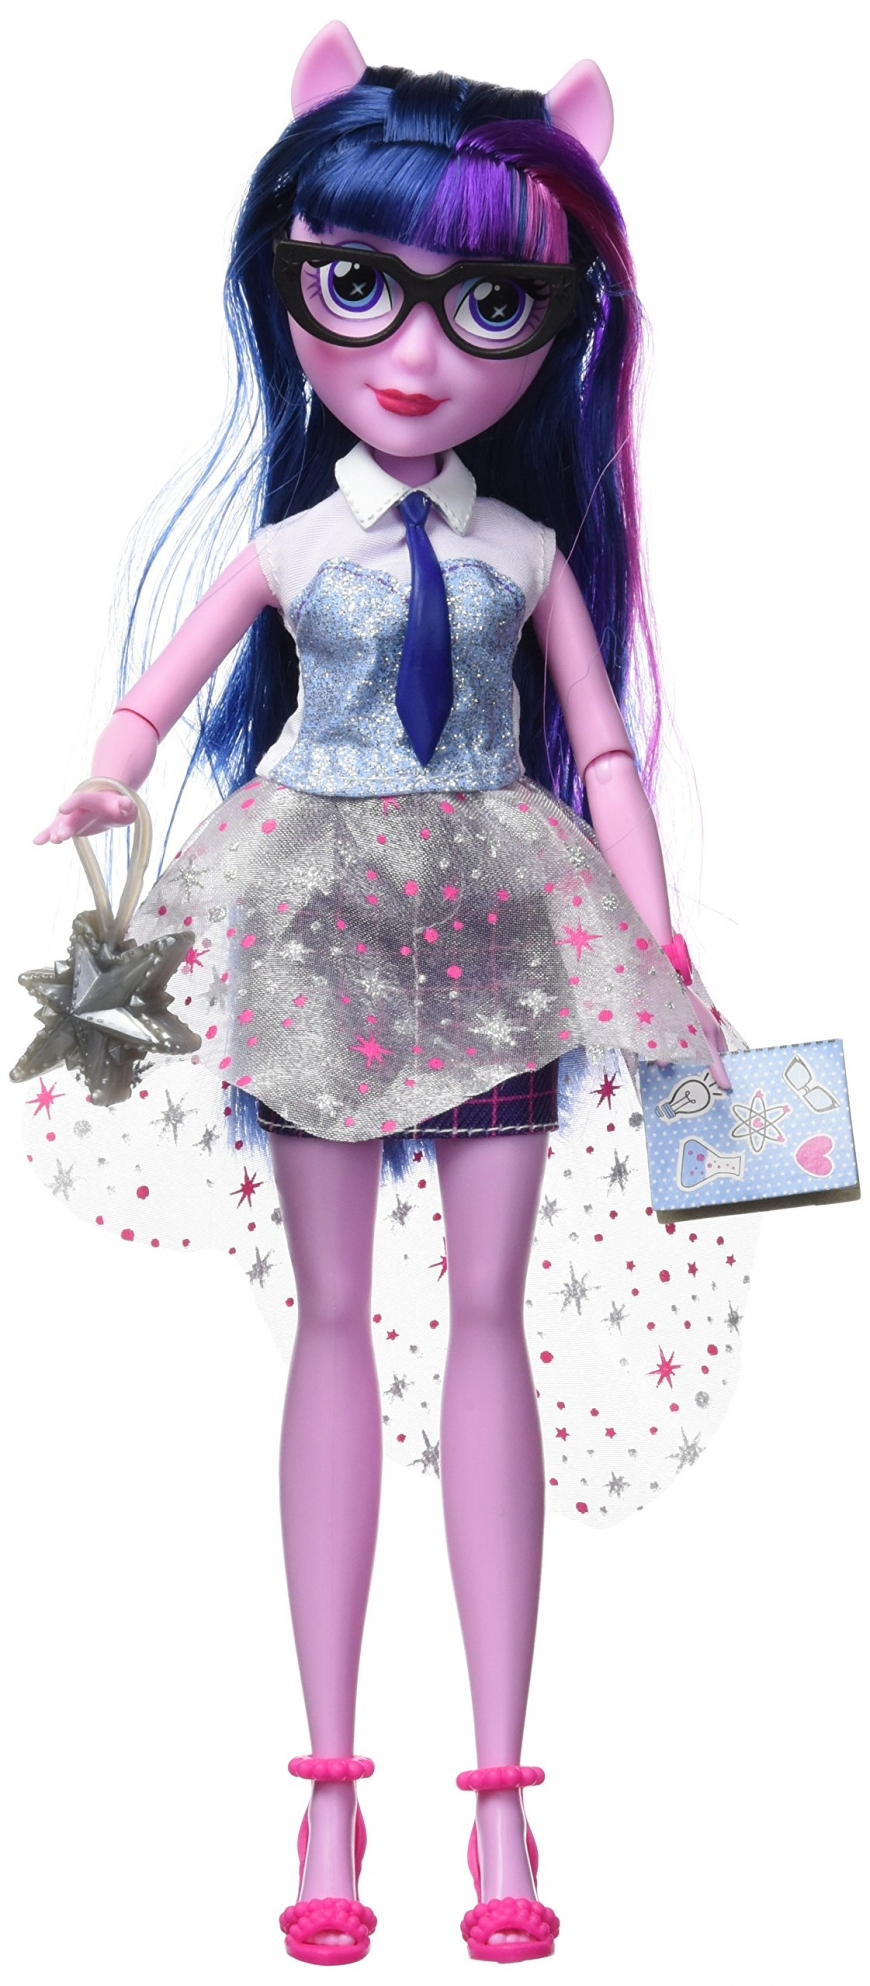 Equestria Girls Deluxe Twilight Sparkle Fashion Doll